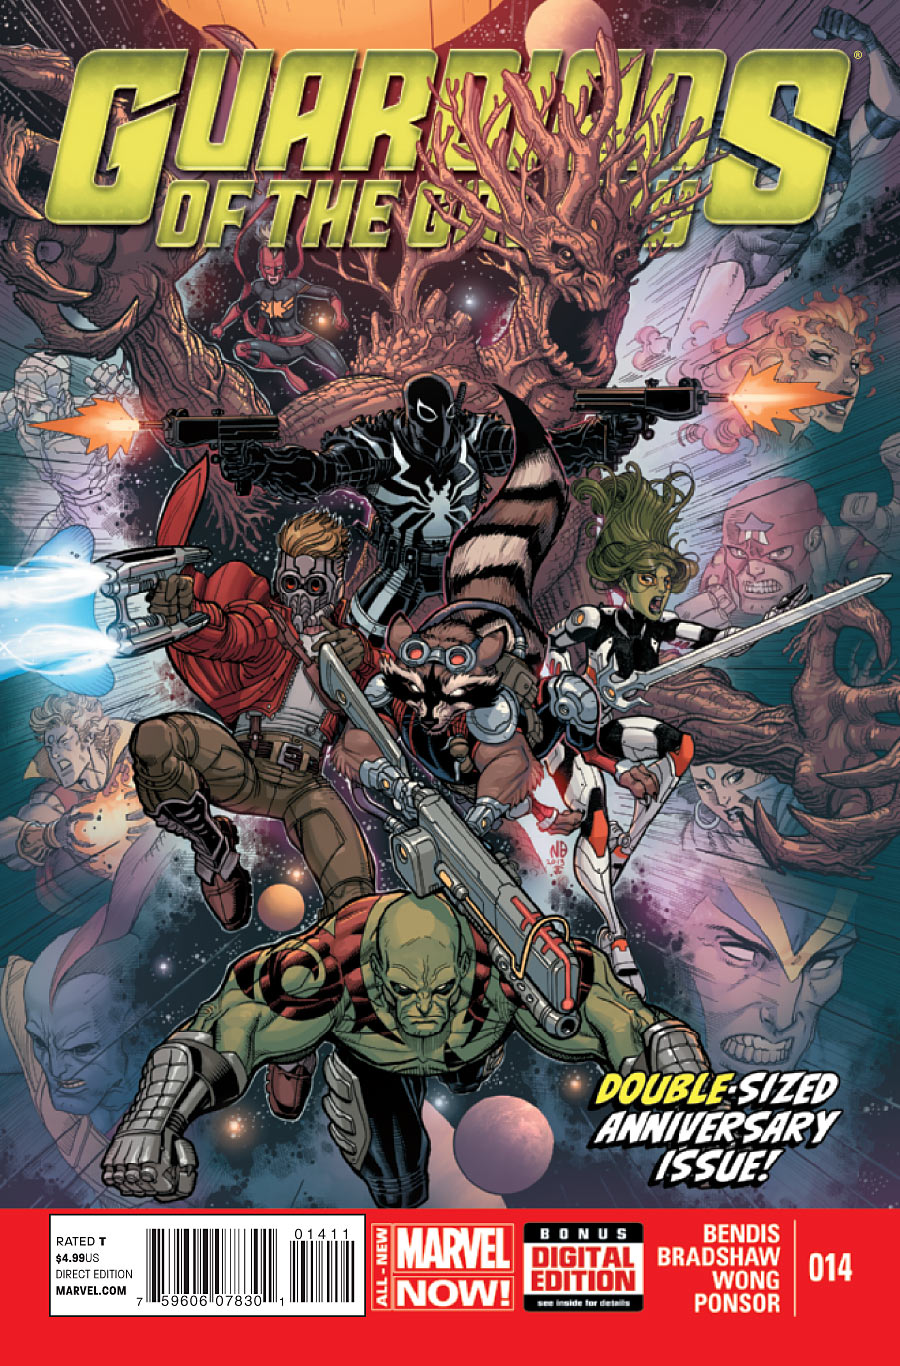 3 Powered The Guardians By Wikia Database 14 Vol Galaxy Marvel Of Fandom eadadbecaded|Foxborough Free Press